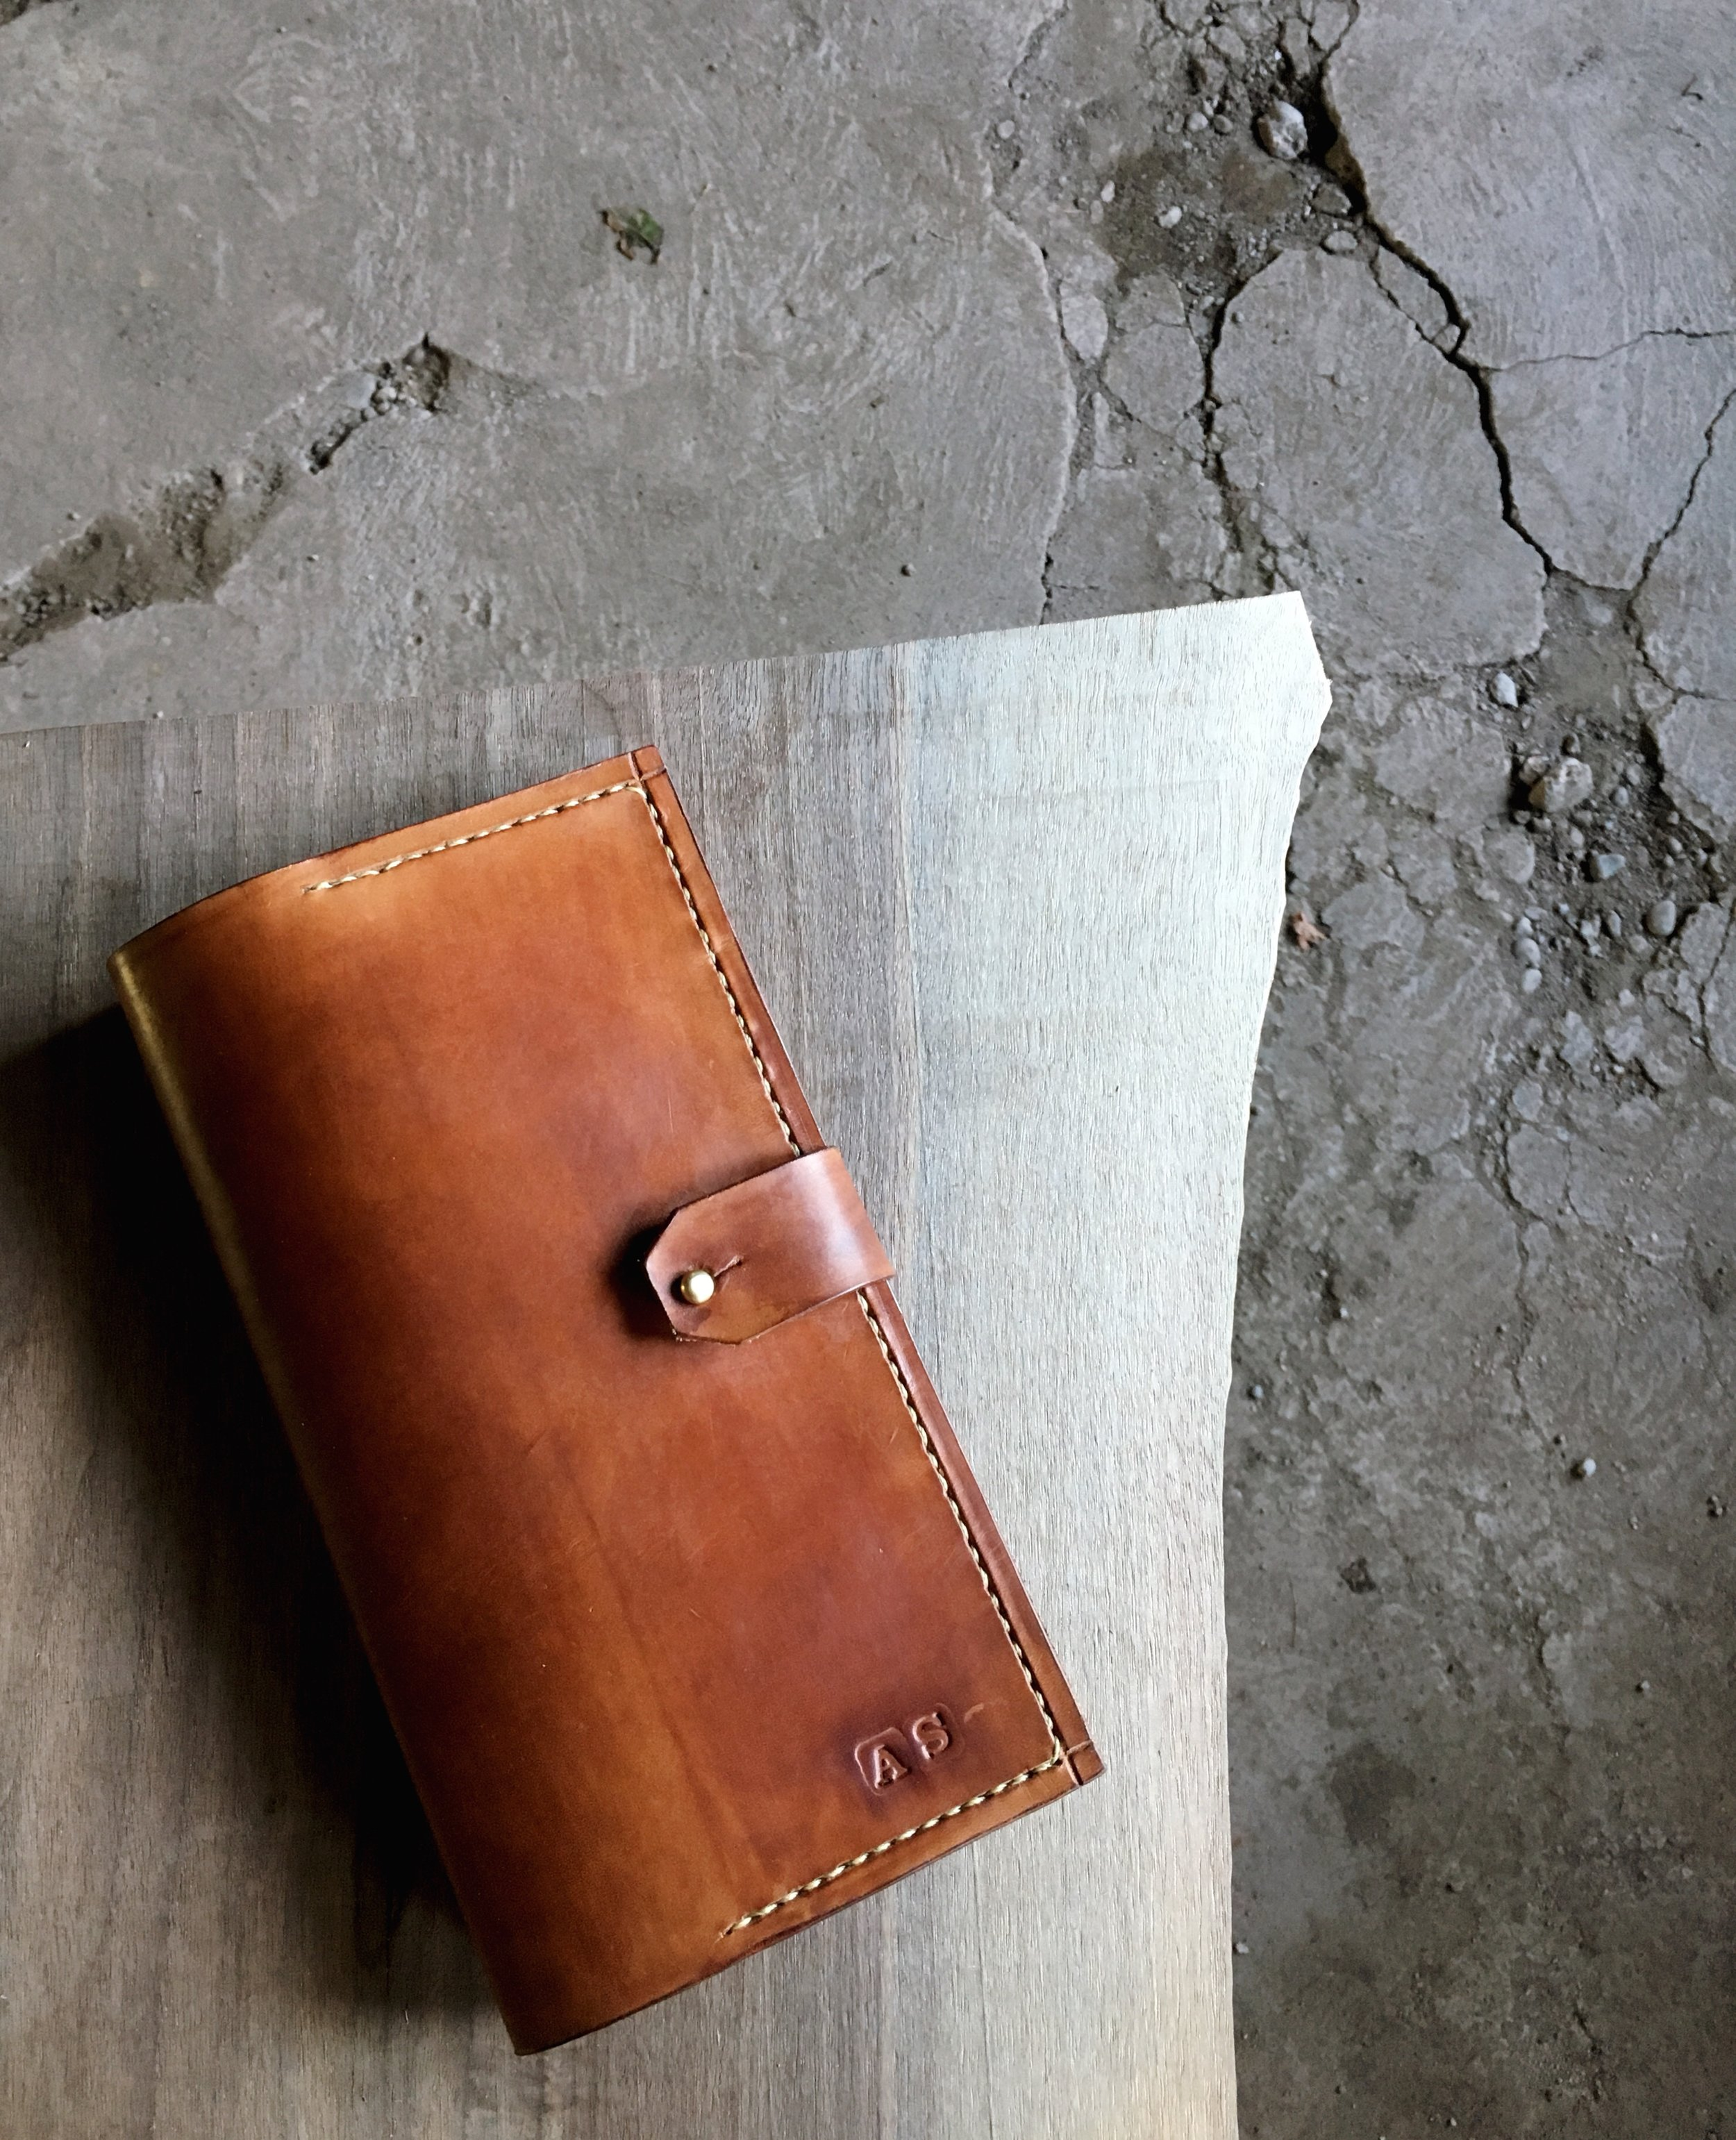 Fish & Bicycle Hand Leather Smithing - photo Juliette Hermant -9